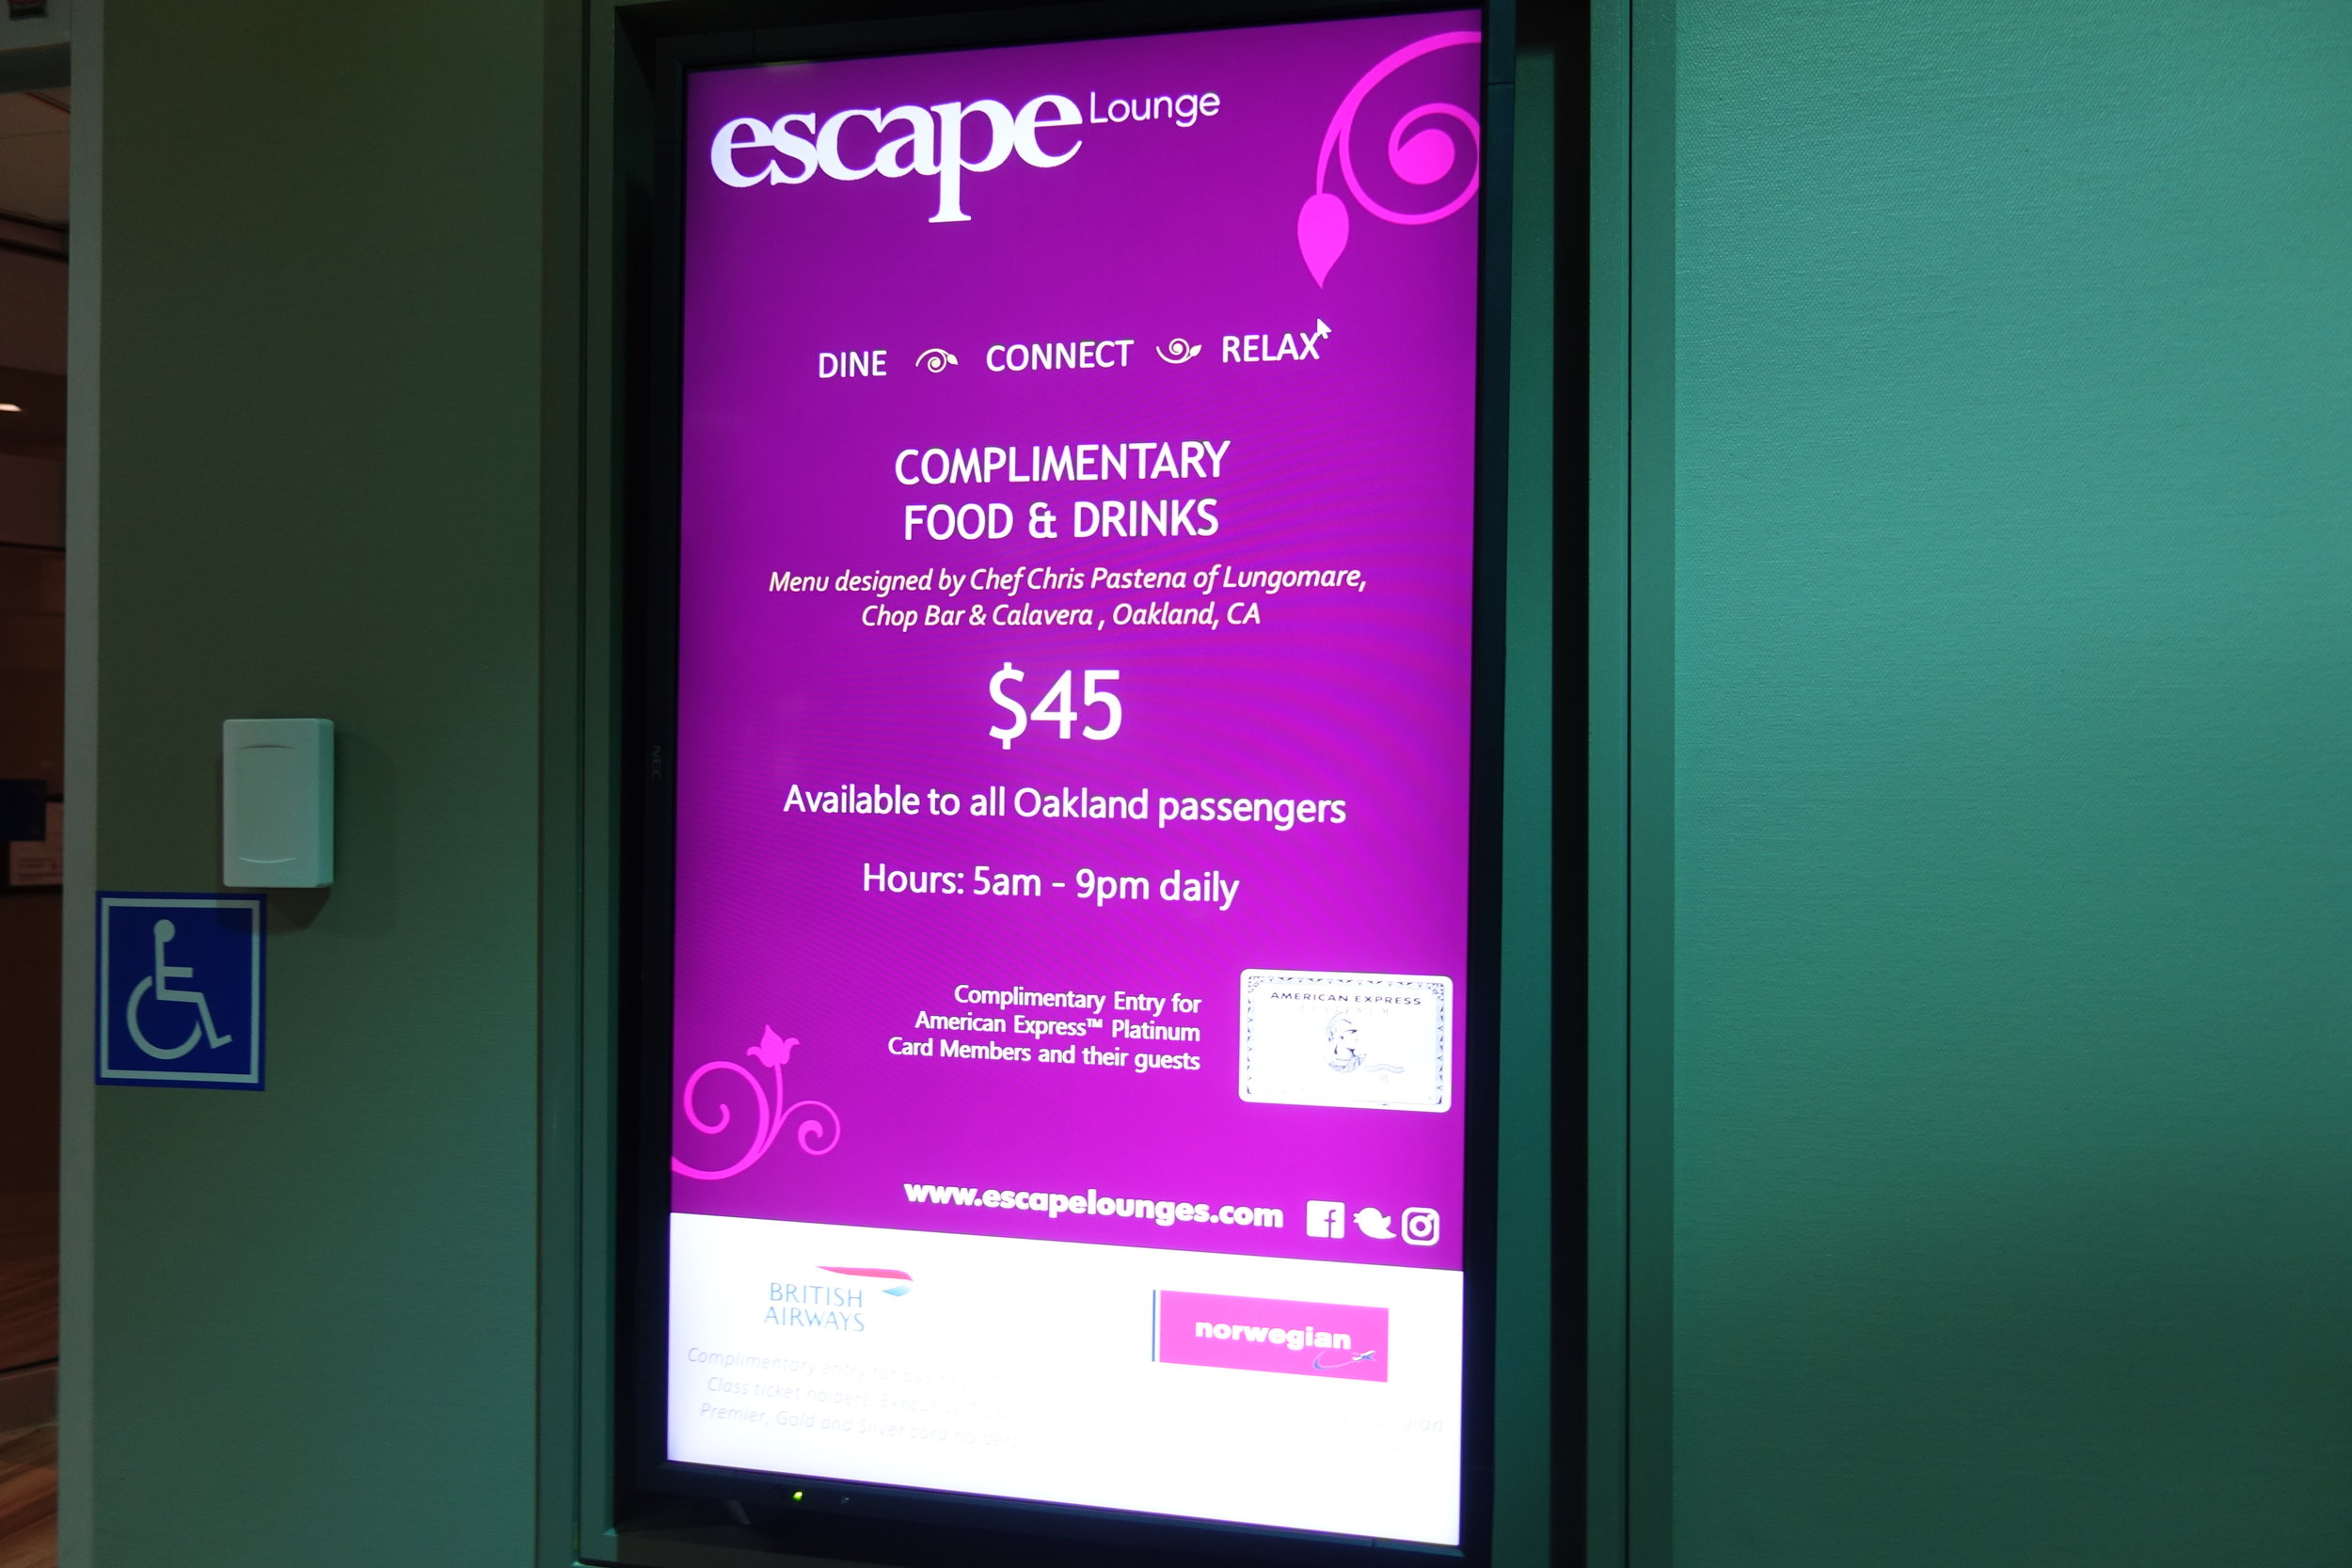 Escape Lounge entrance fee and hours